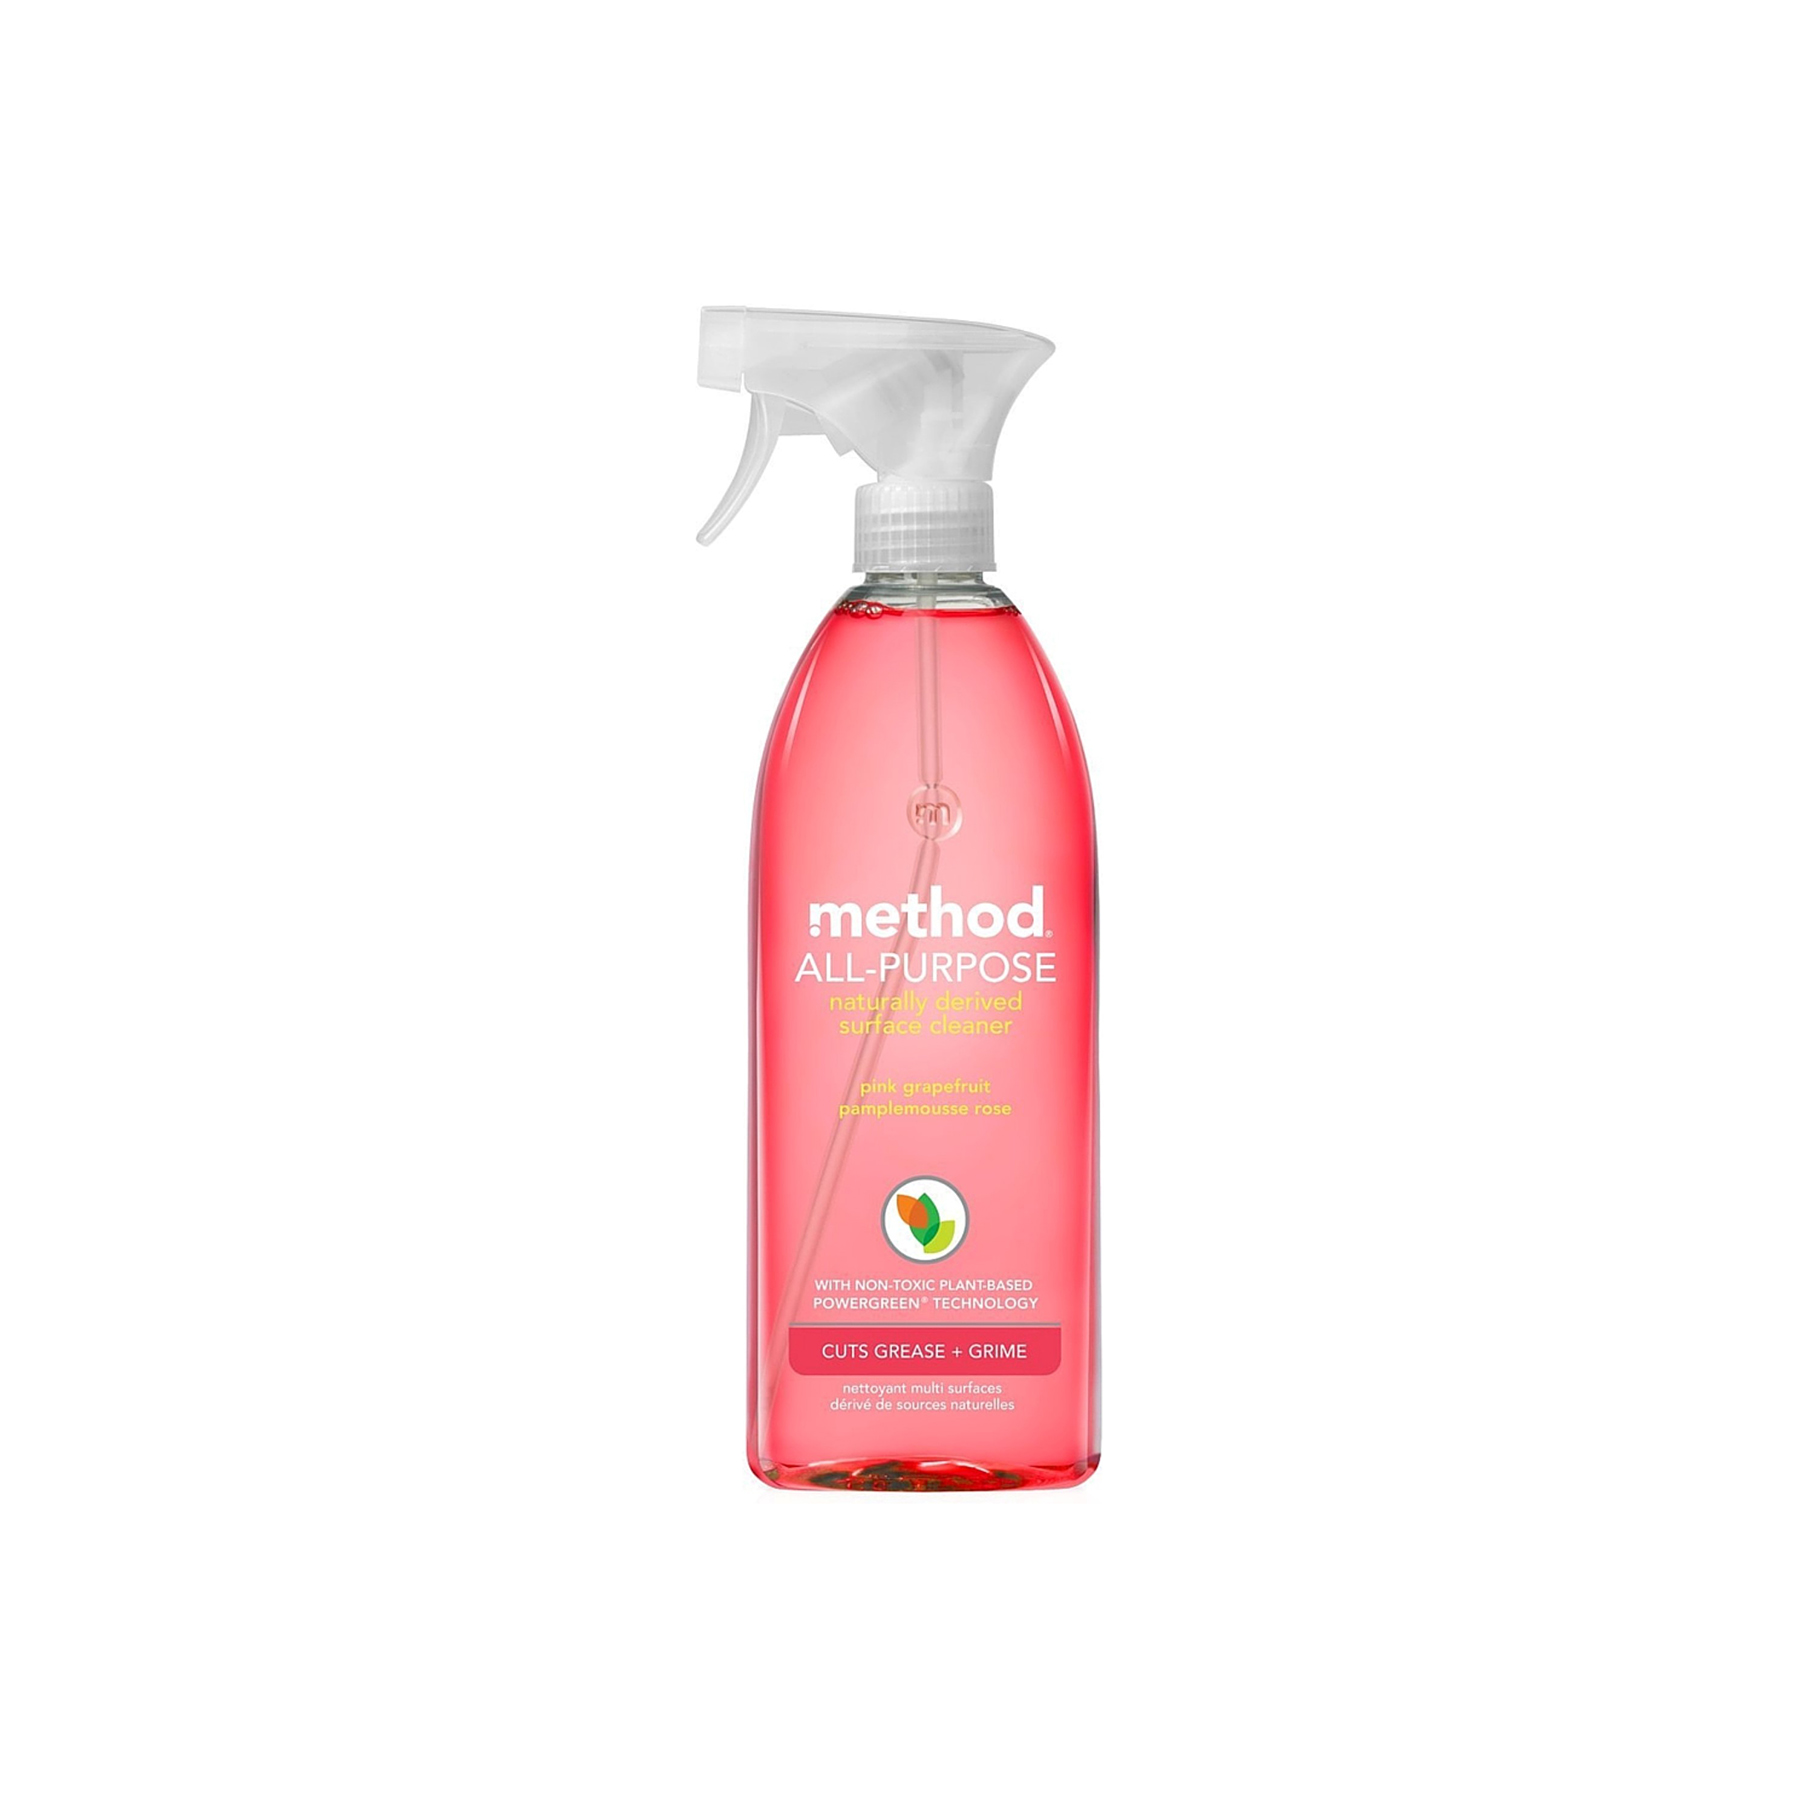 Method All-Purpose Cleaning Spray in Pink Grapefruit